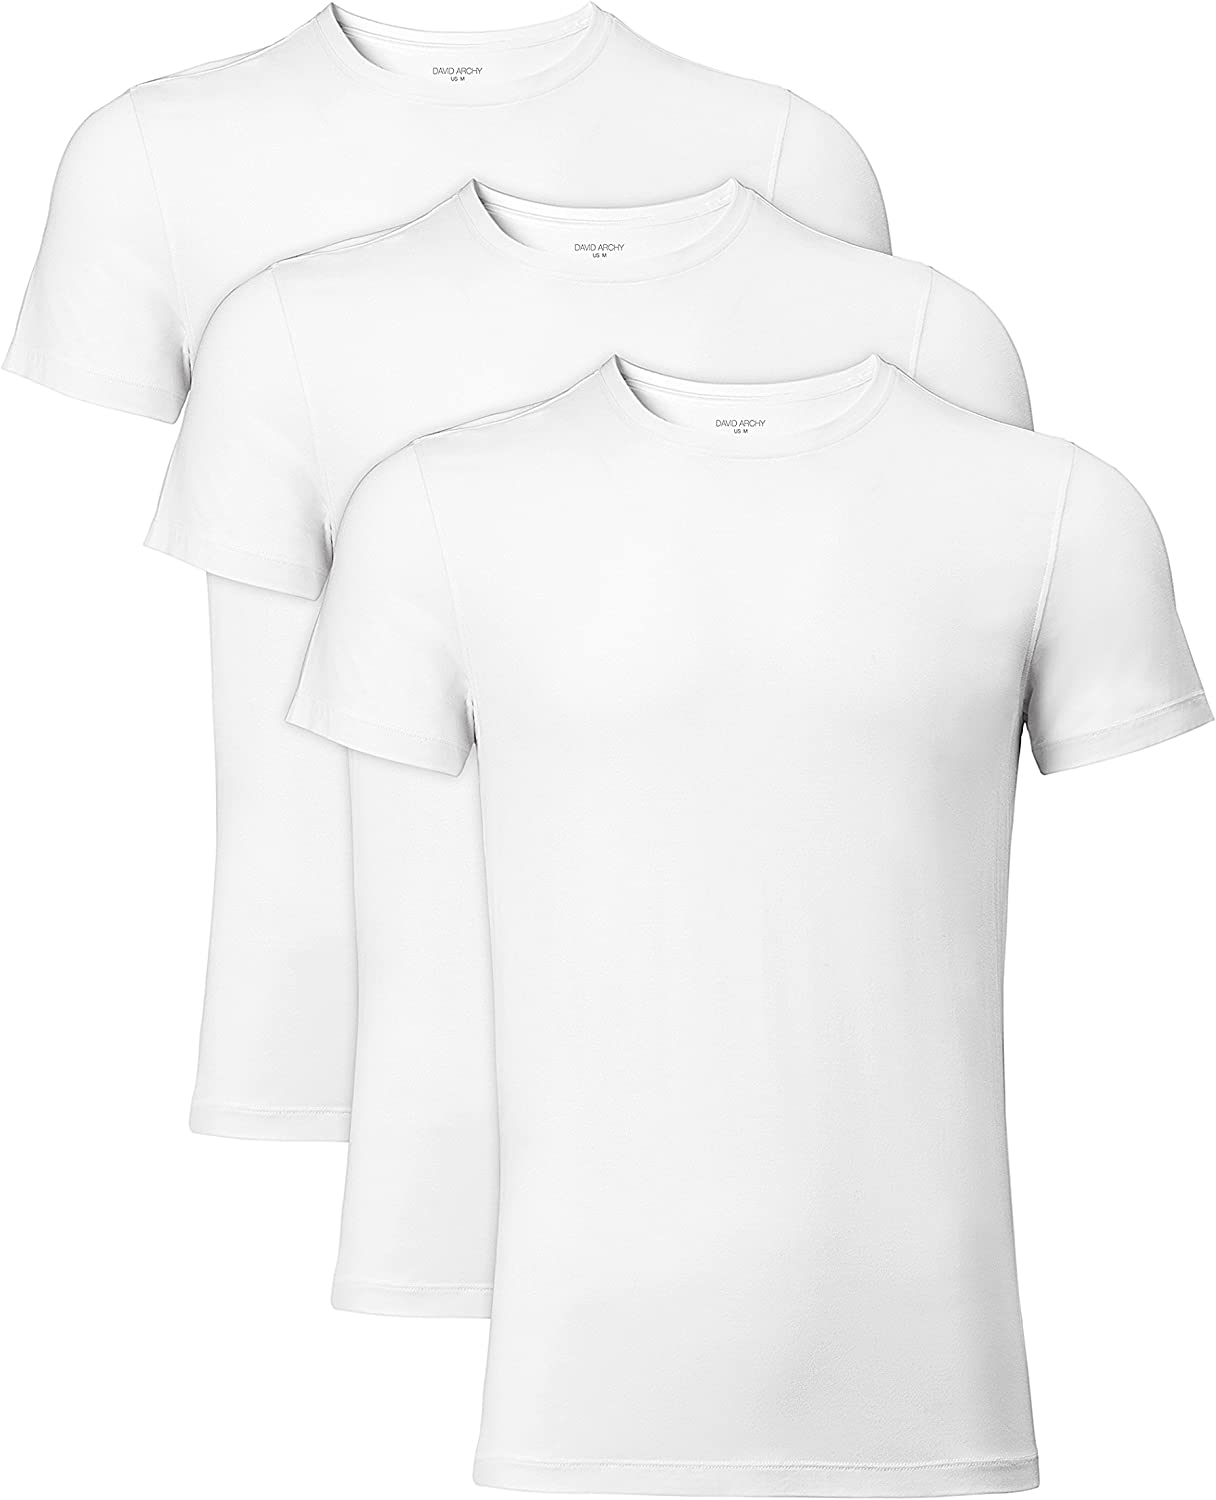 DAVID ARCHY Men's 3 Pack Soft Comfy Bamboo Rayon Undershirts Breathable Crew Neck Tees Short Sleeve T-Shirts